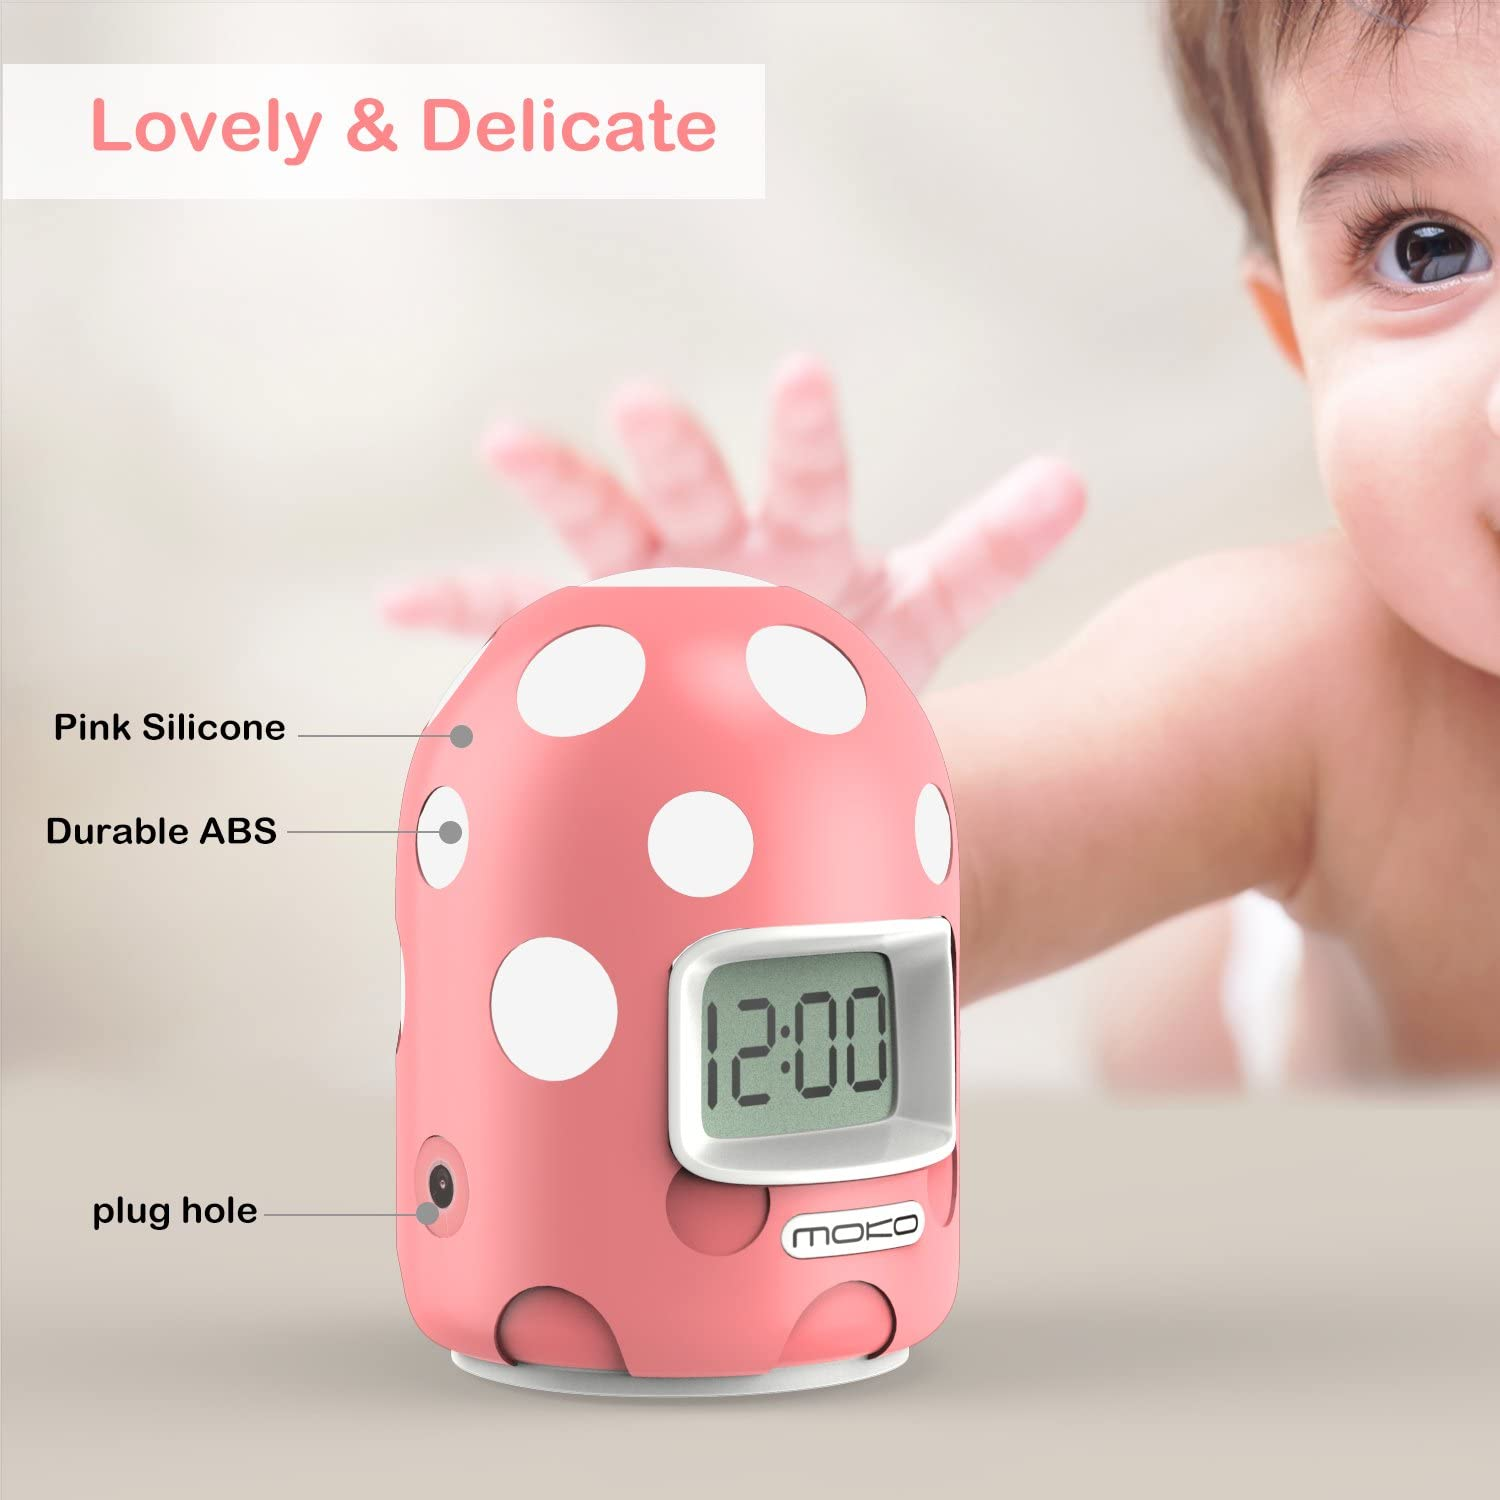 Blue Mini LCD Display Kids Clock Color Changing Night Light Travel Alarm Clocks Electronic Bedside Table Lamp with Snooze Backlight Function for Home Office MoKo Digital Alarm Clock